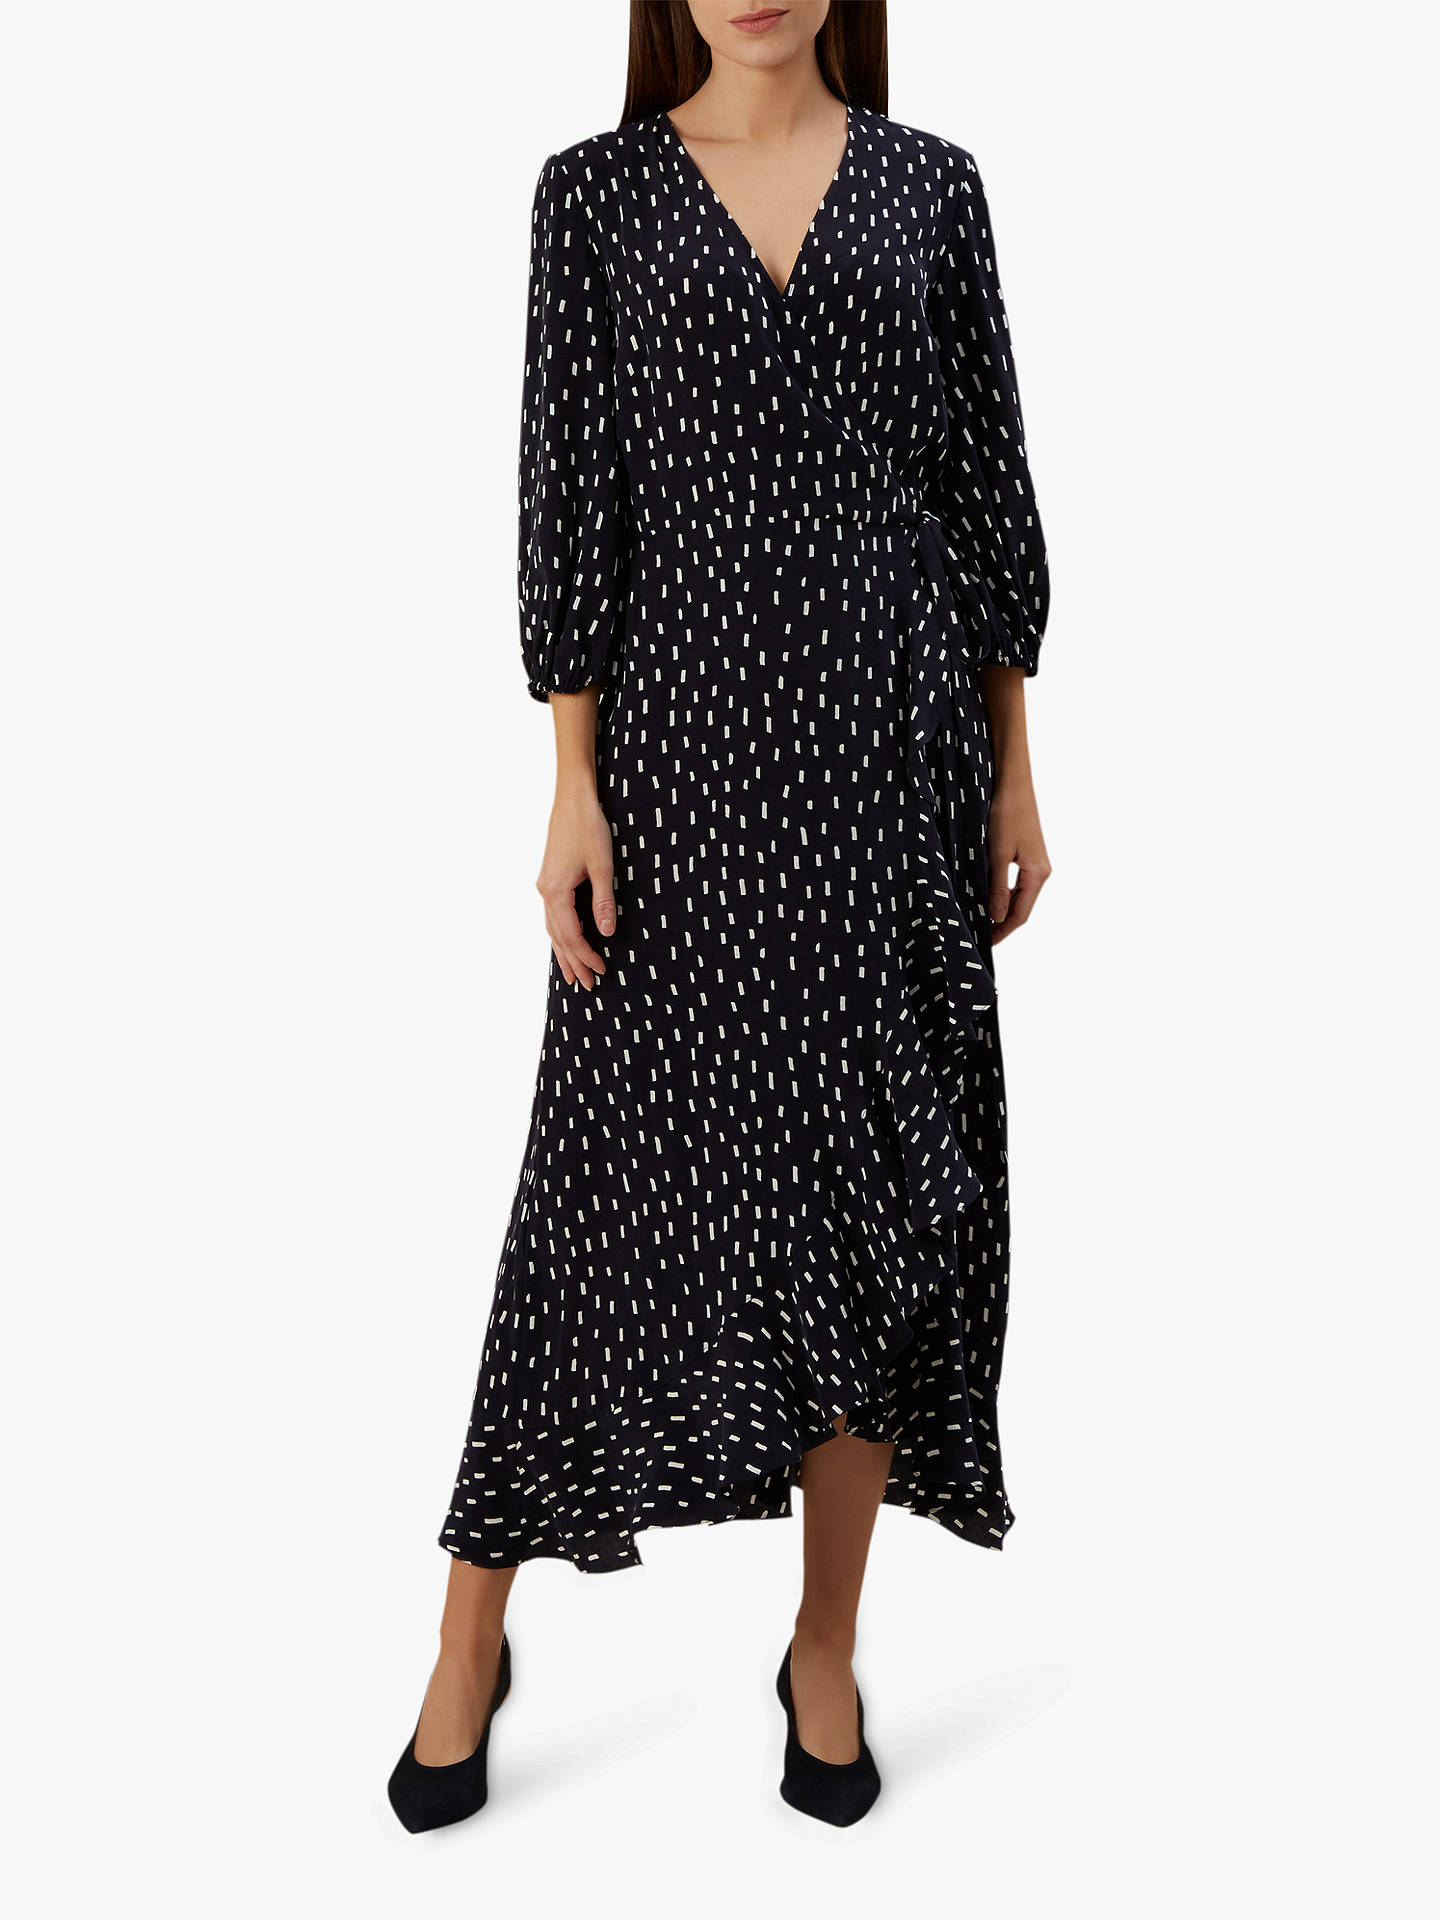 57c707975 Buy Hobbs Lucinda Dress